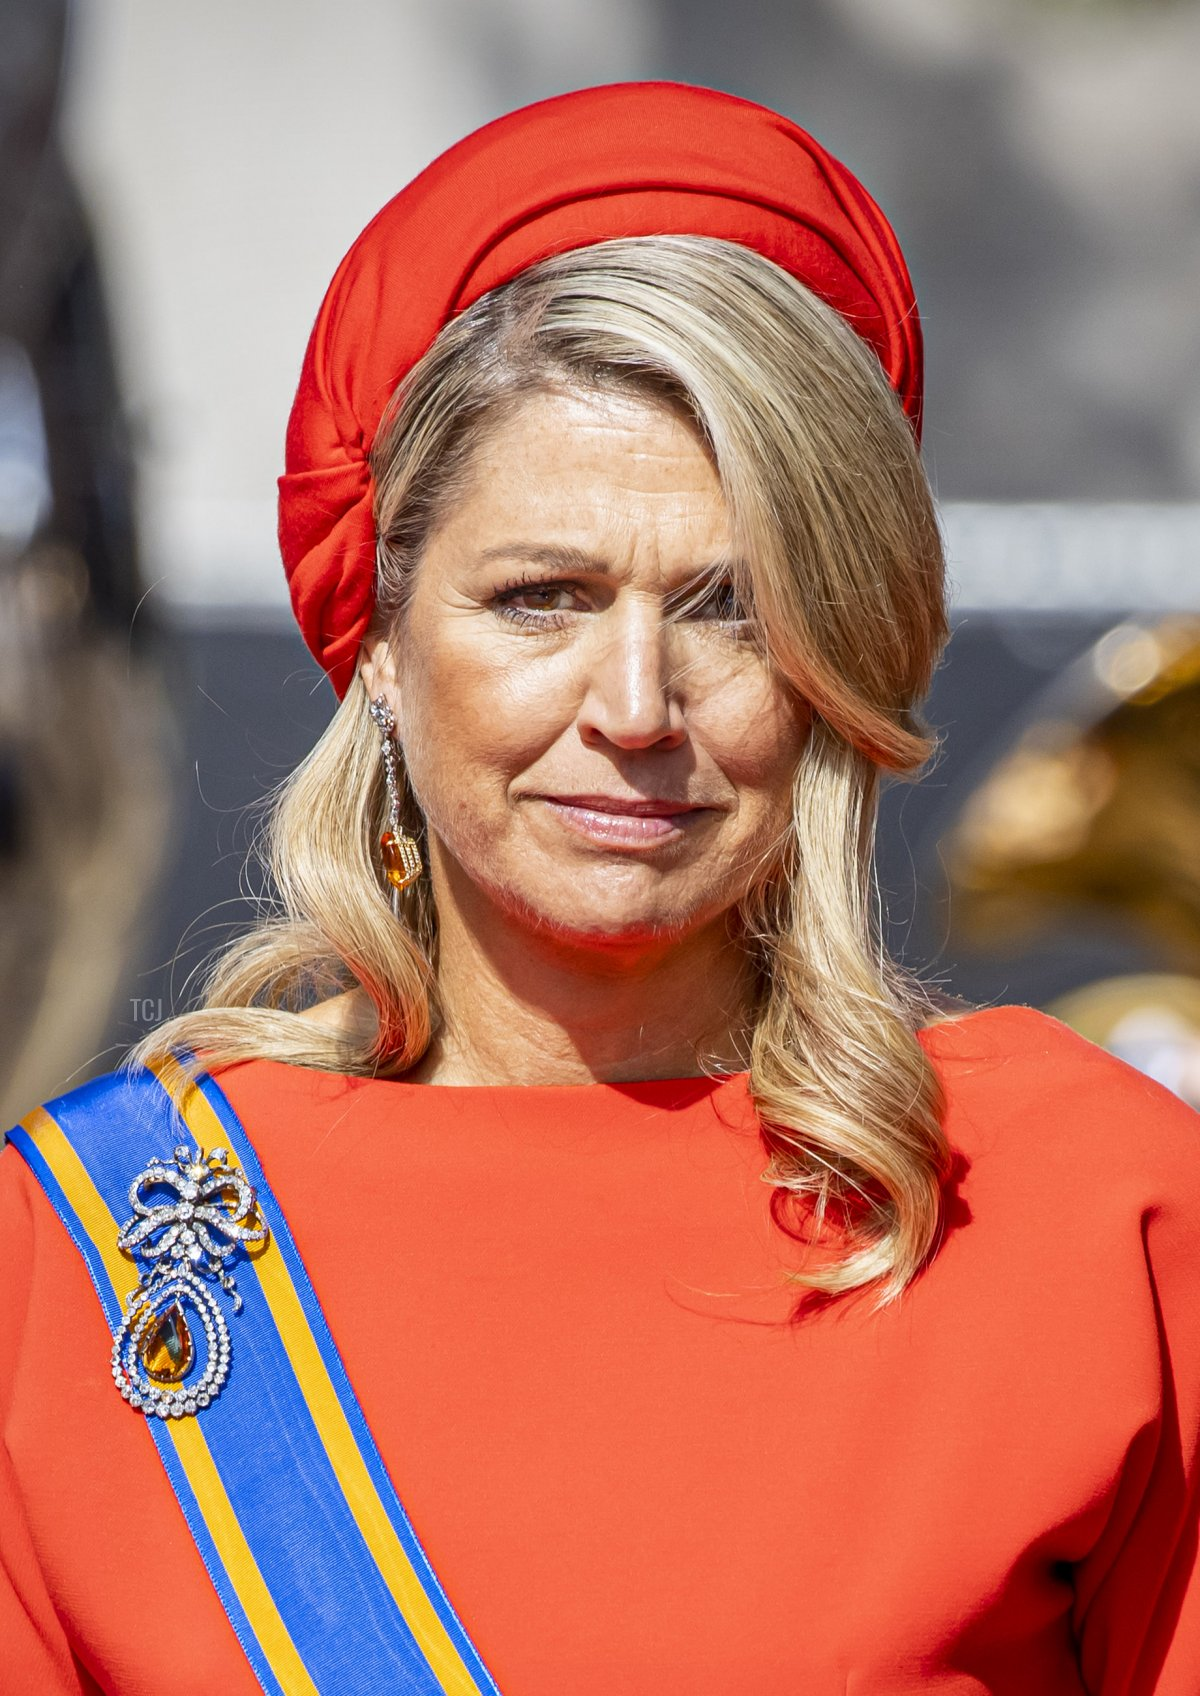 Queen Maxima of The Netherlands attends Prinsjesdag, the annual opening of the parliamentary year, in the Grote Kerk on September 21, 2021 in The Hague, Netherlands